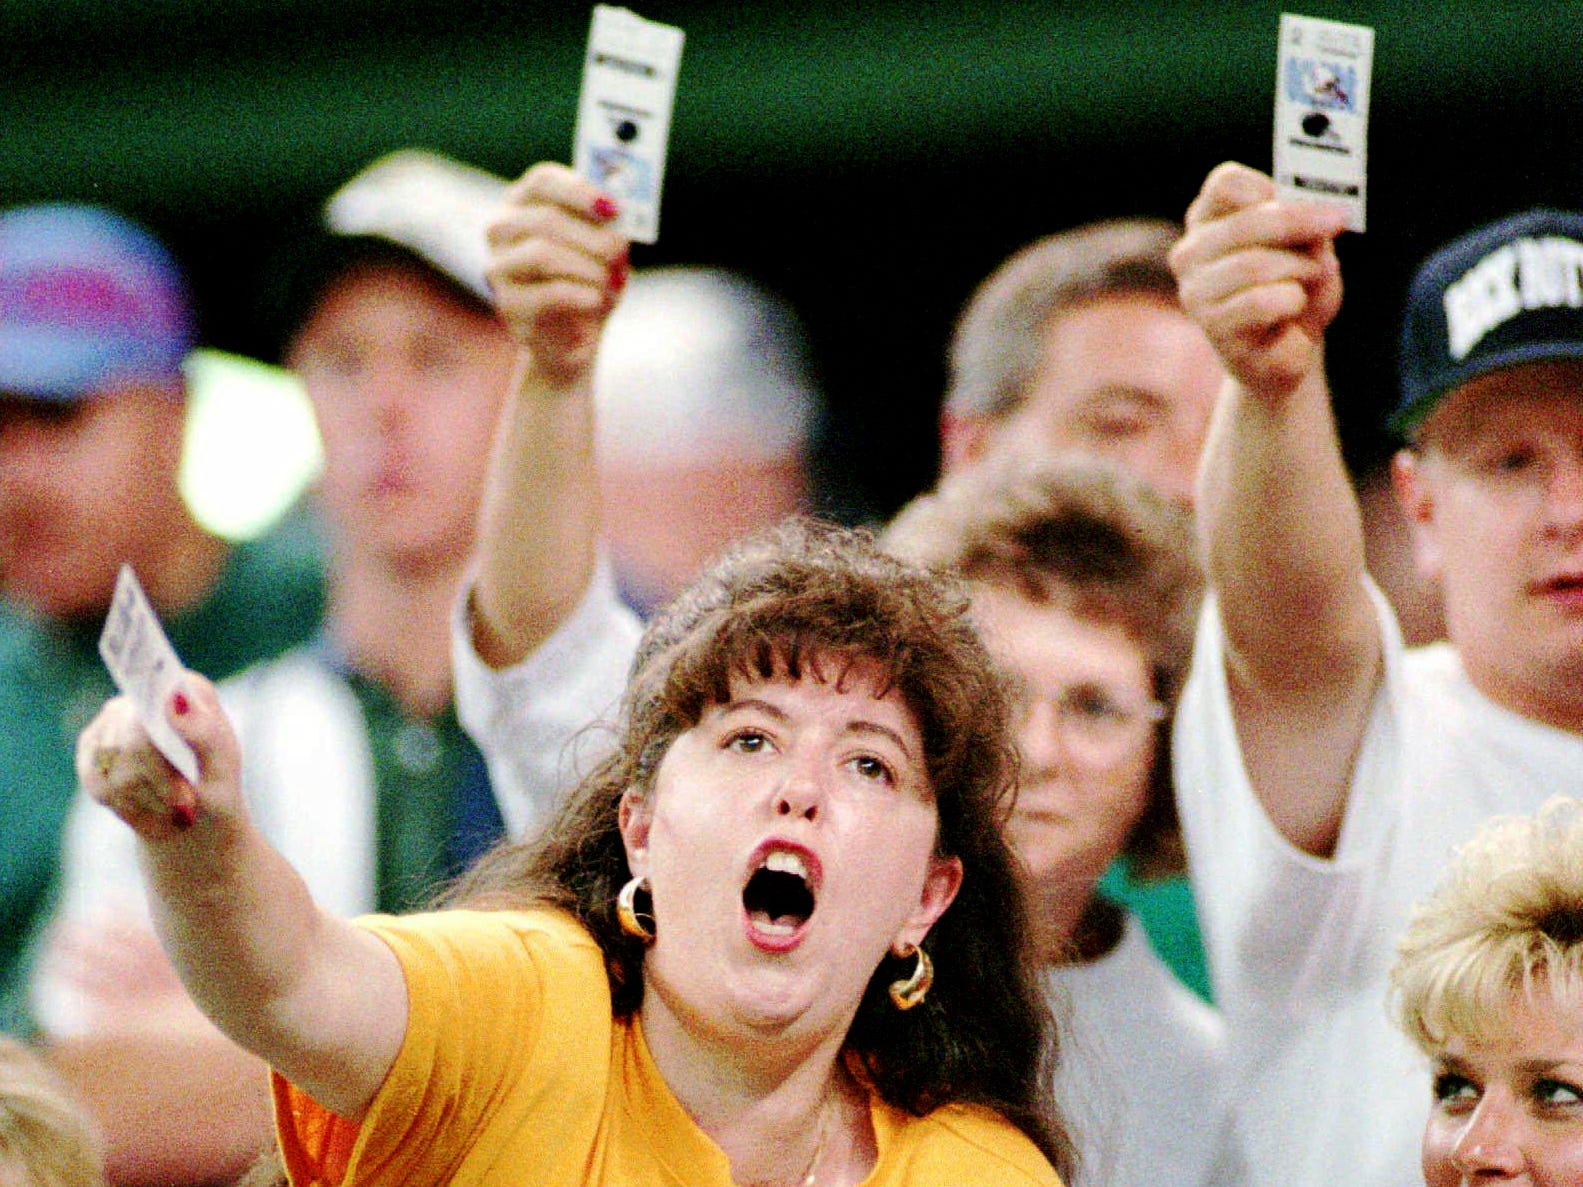 Houston Oilers fans scream for a refund as they wave their tickets after the game against the San Diego Chargers was cancelled Aug. 19, 1995 in Houston. The Astrodome field was deemed unplayable by officials who considered the artificial surface unsafe to play on.